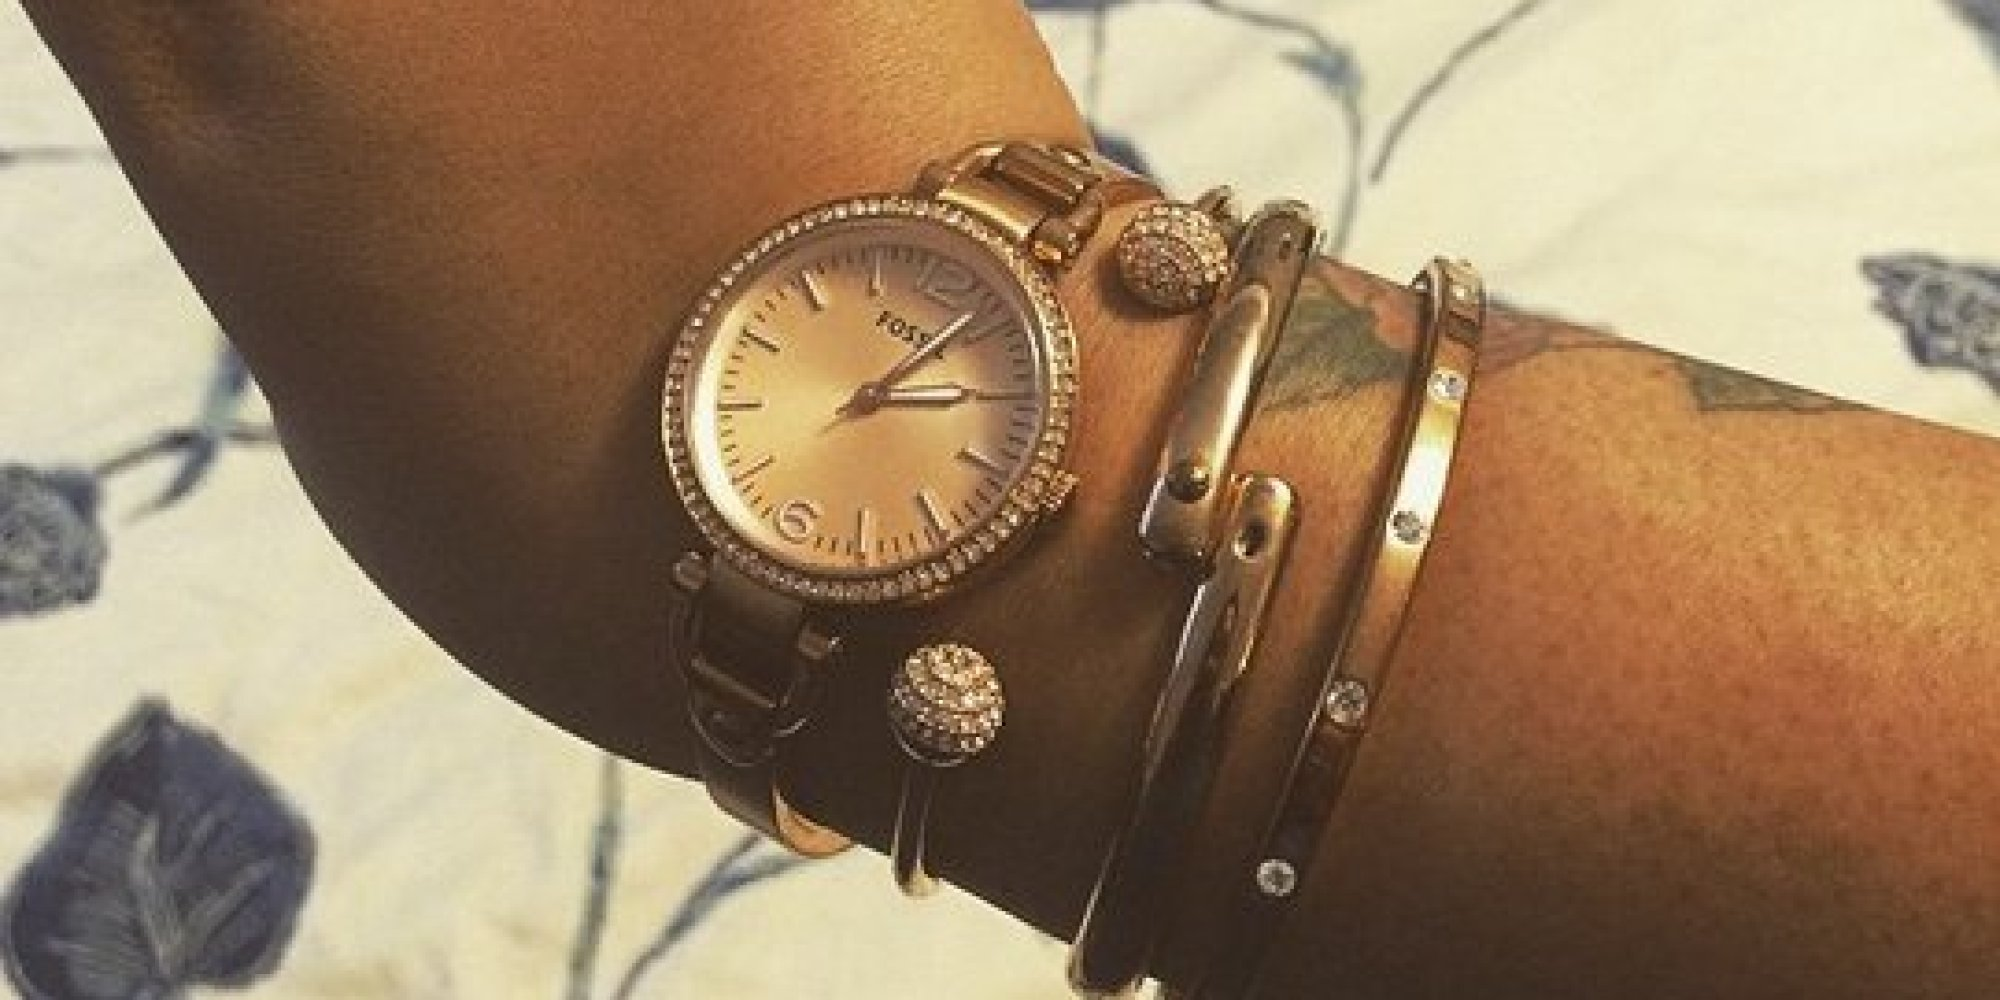 Proof That Rose Gold Jewelry Looks Great With Almost Every